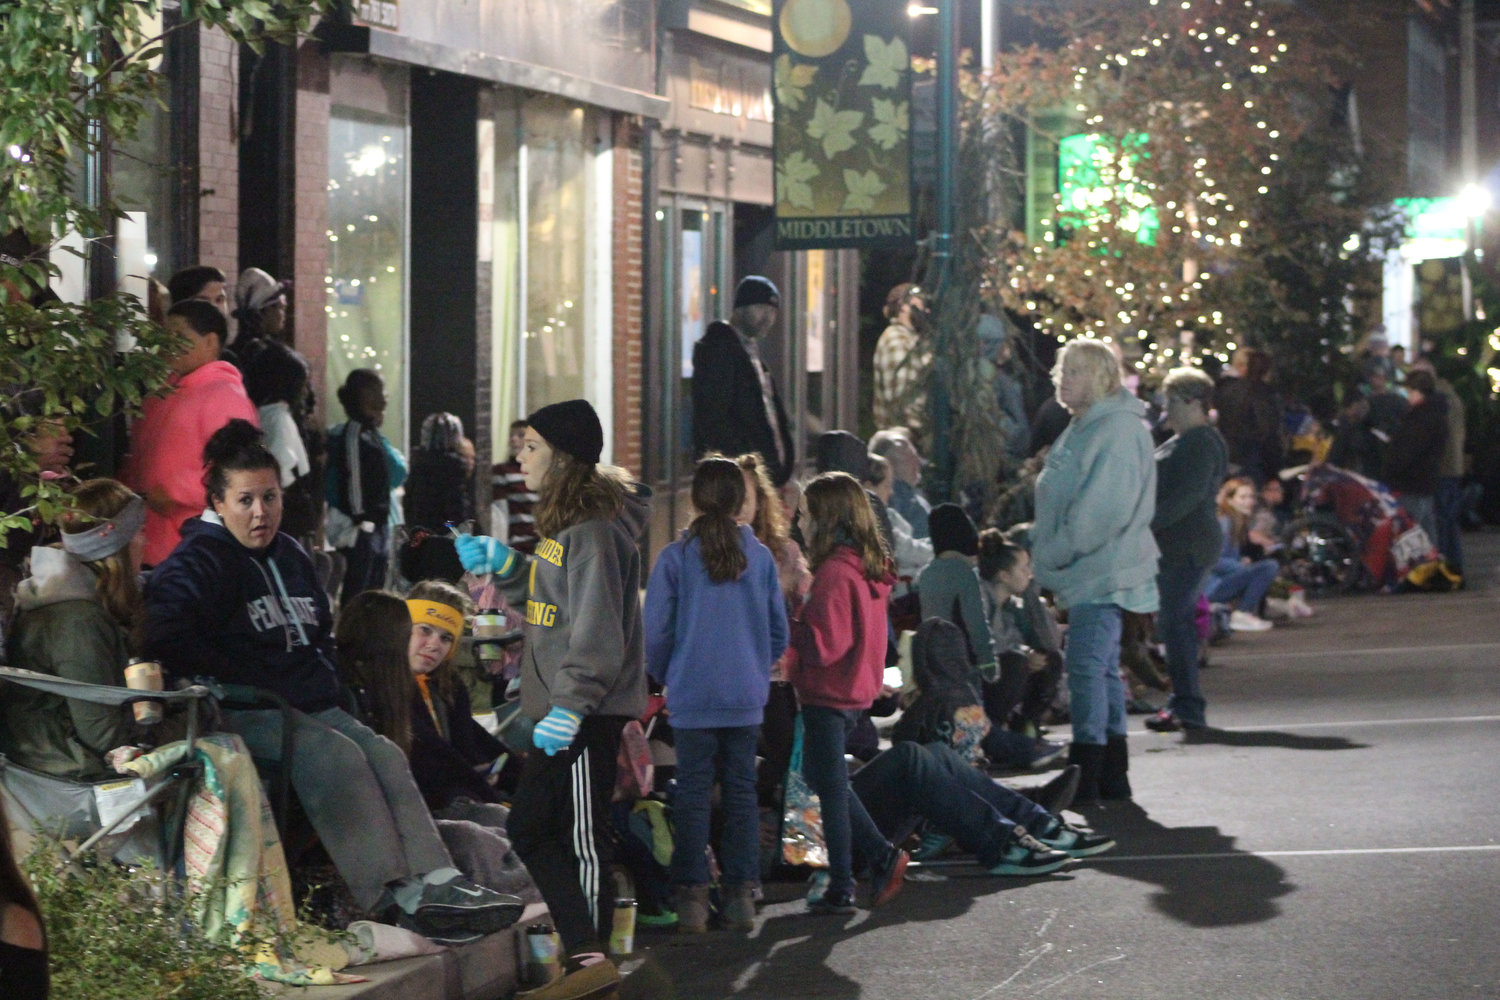 People grab seats along North Union Street and wait for the Halloween parade on Oct. 16.